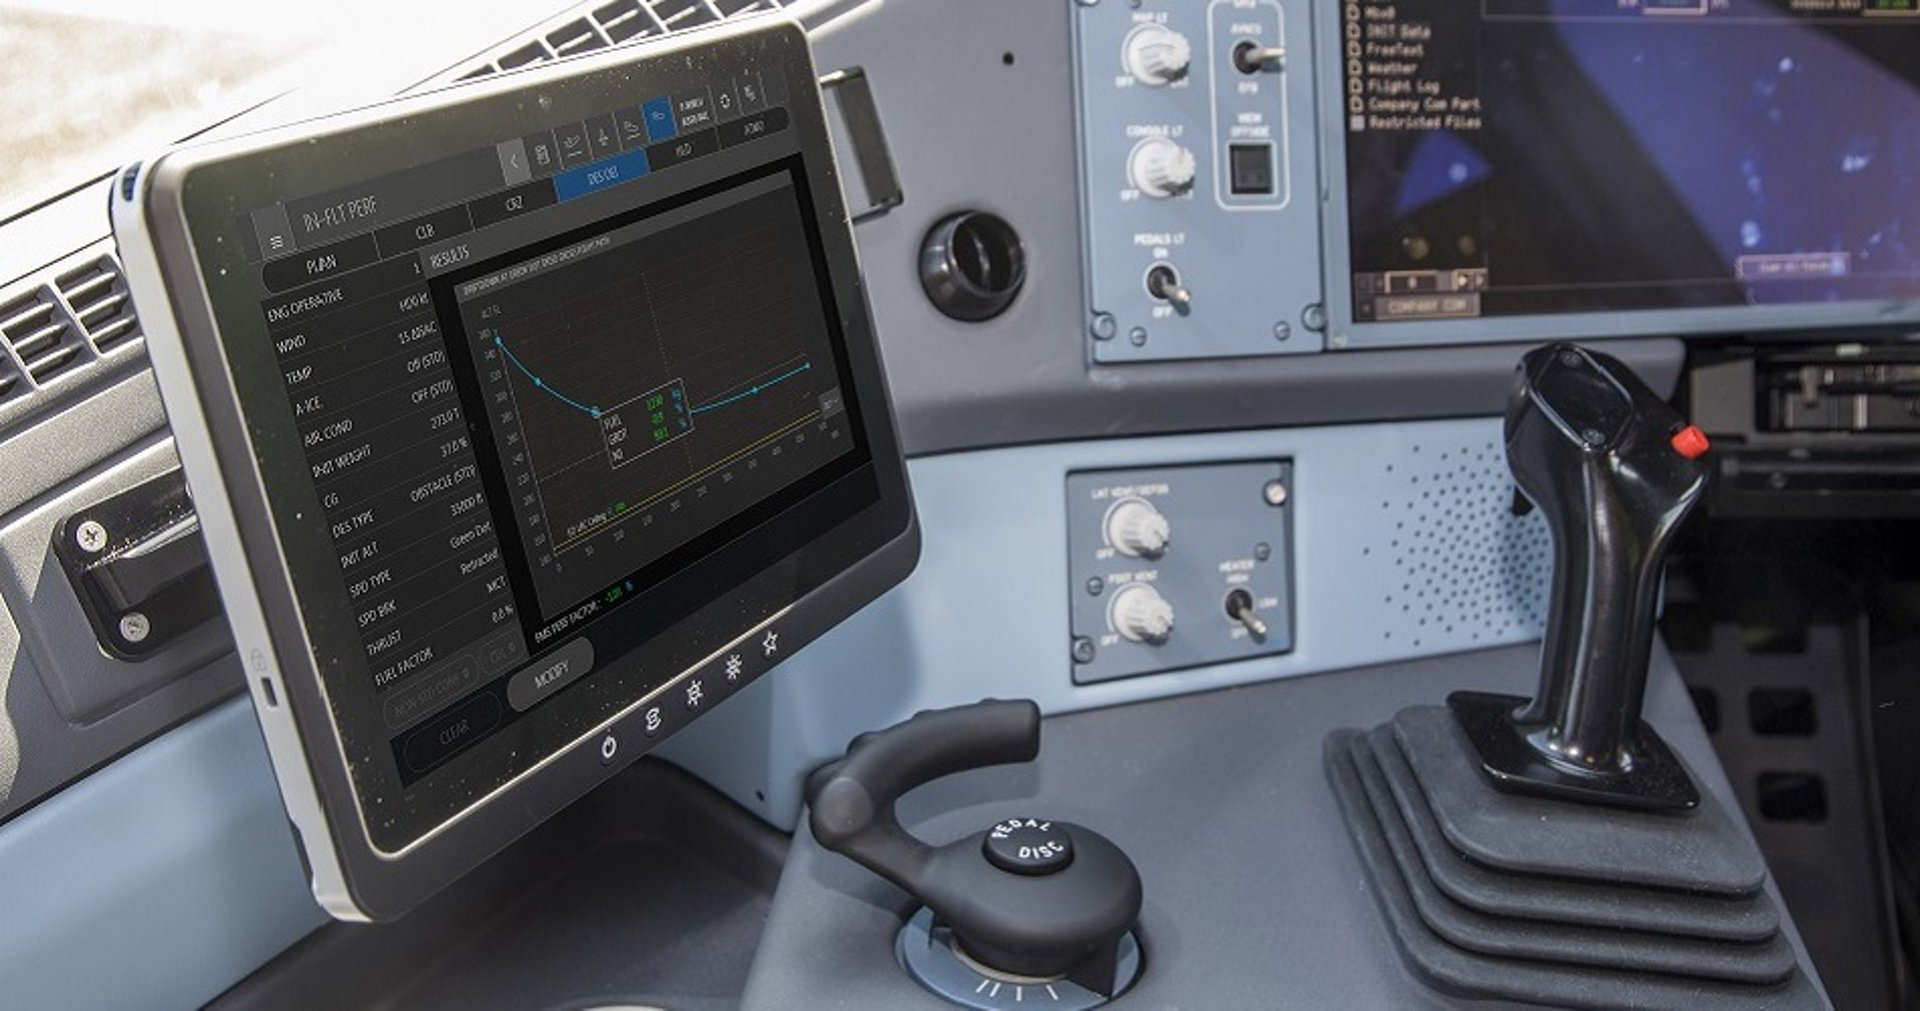 Electronic Flight Bag installed in a cockpit